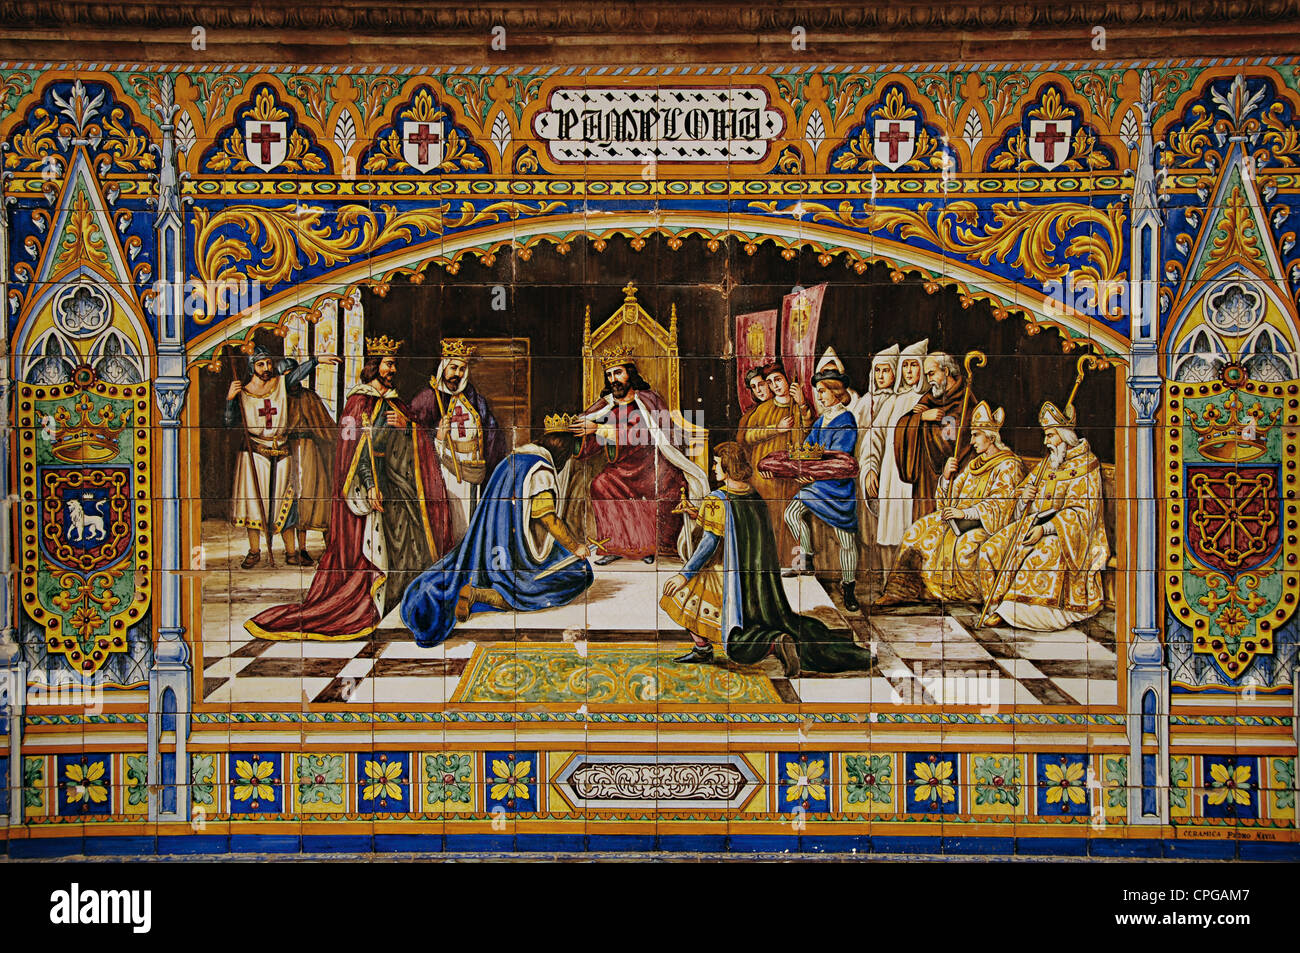 Sancho III Garces, the Great (c.992-1035) distributing their kingdoms among their sons. Mosaic of the Spain's - Stock Image